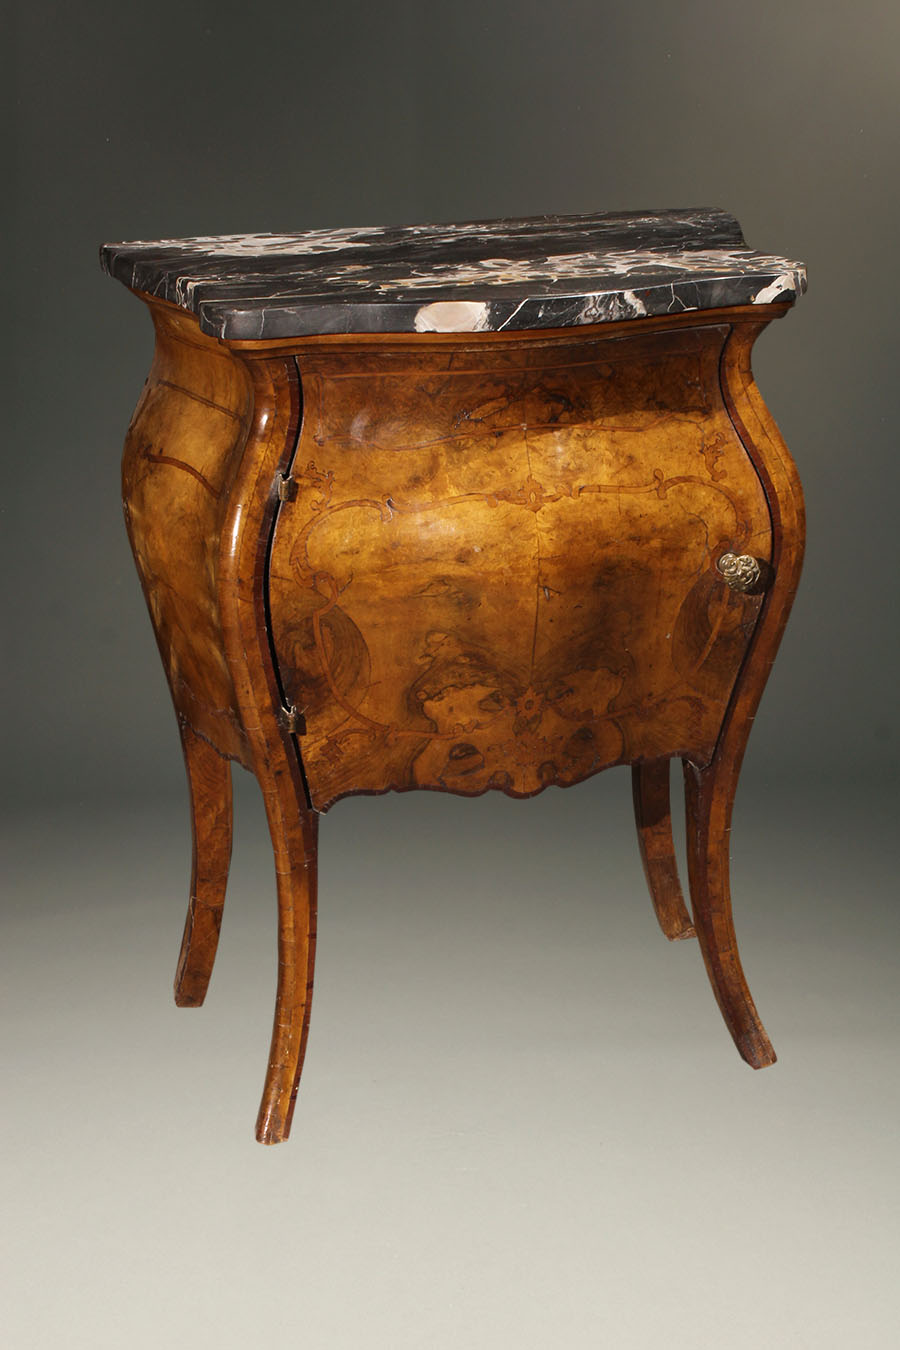 Commode furniture - A5649b Antique Commode Stand Bombe Italian Burl Marble